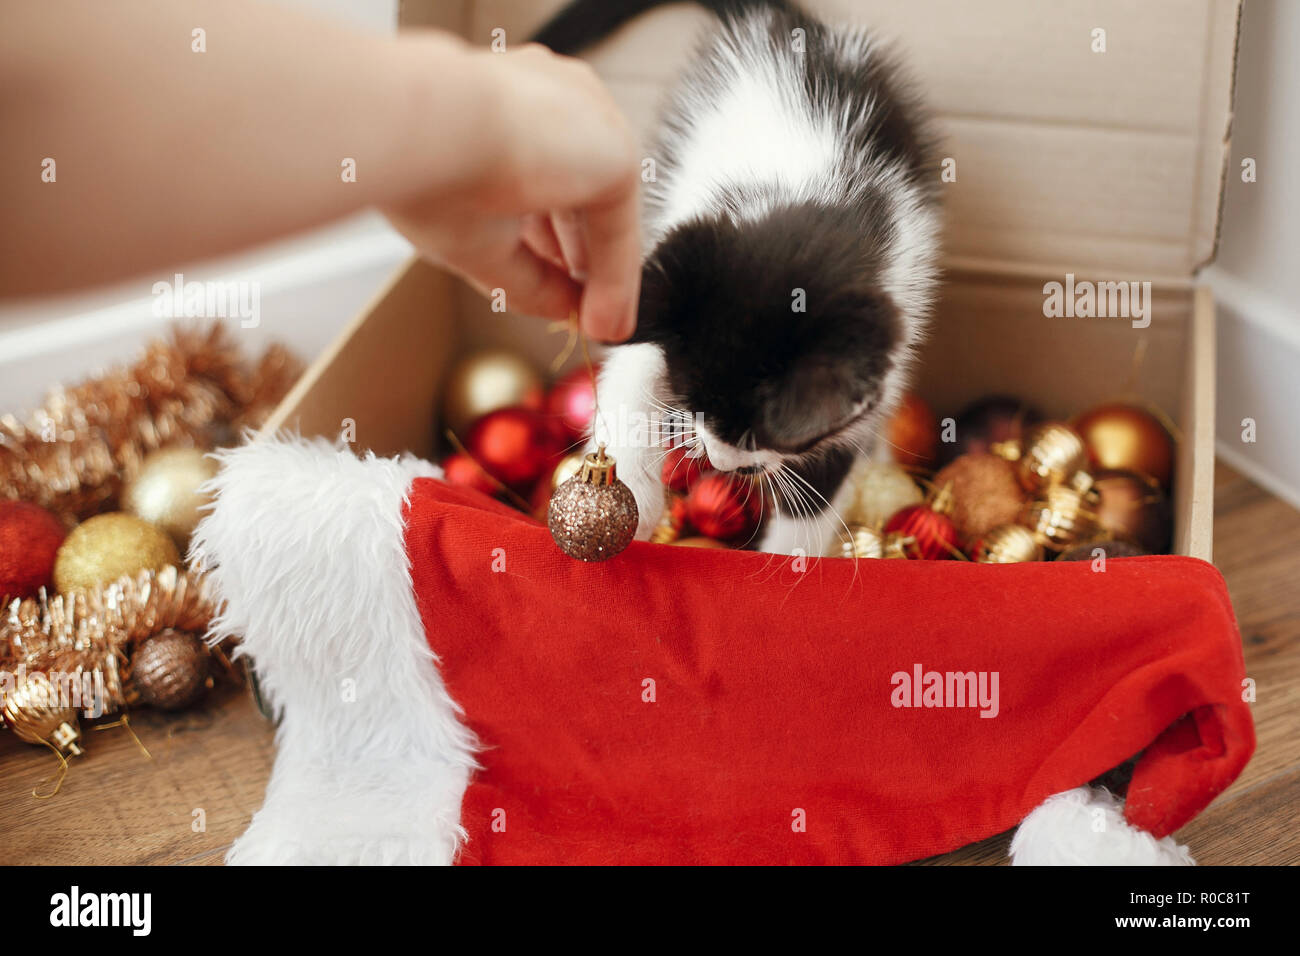 Hand playing with cute kitty at box with red and gold baubles, ornaments and santa hat under christmas tree in festive room. Merry Christmas concept.  Stock Photo